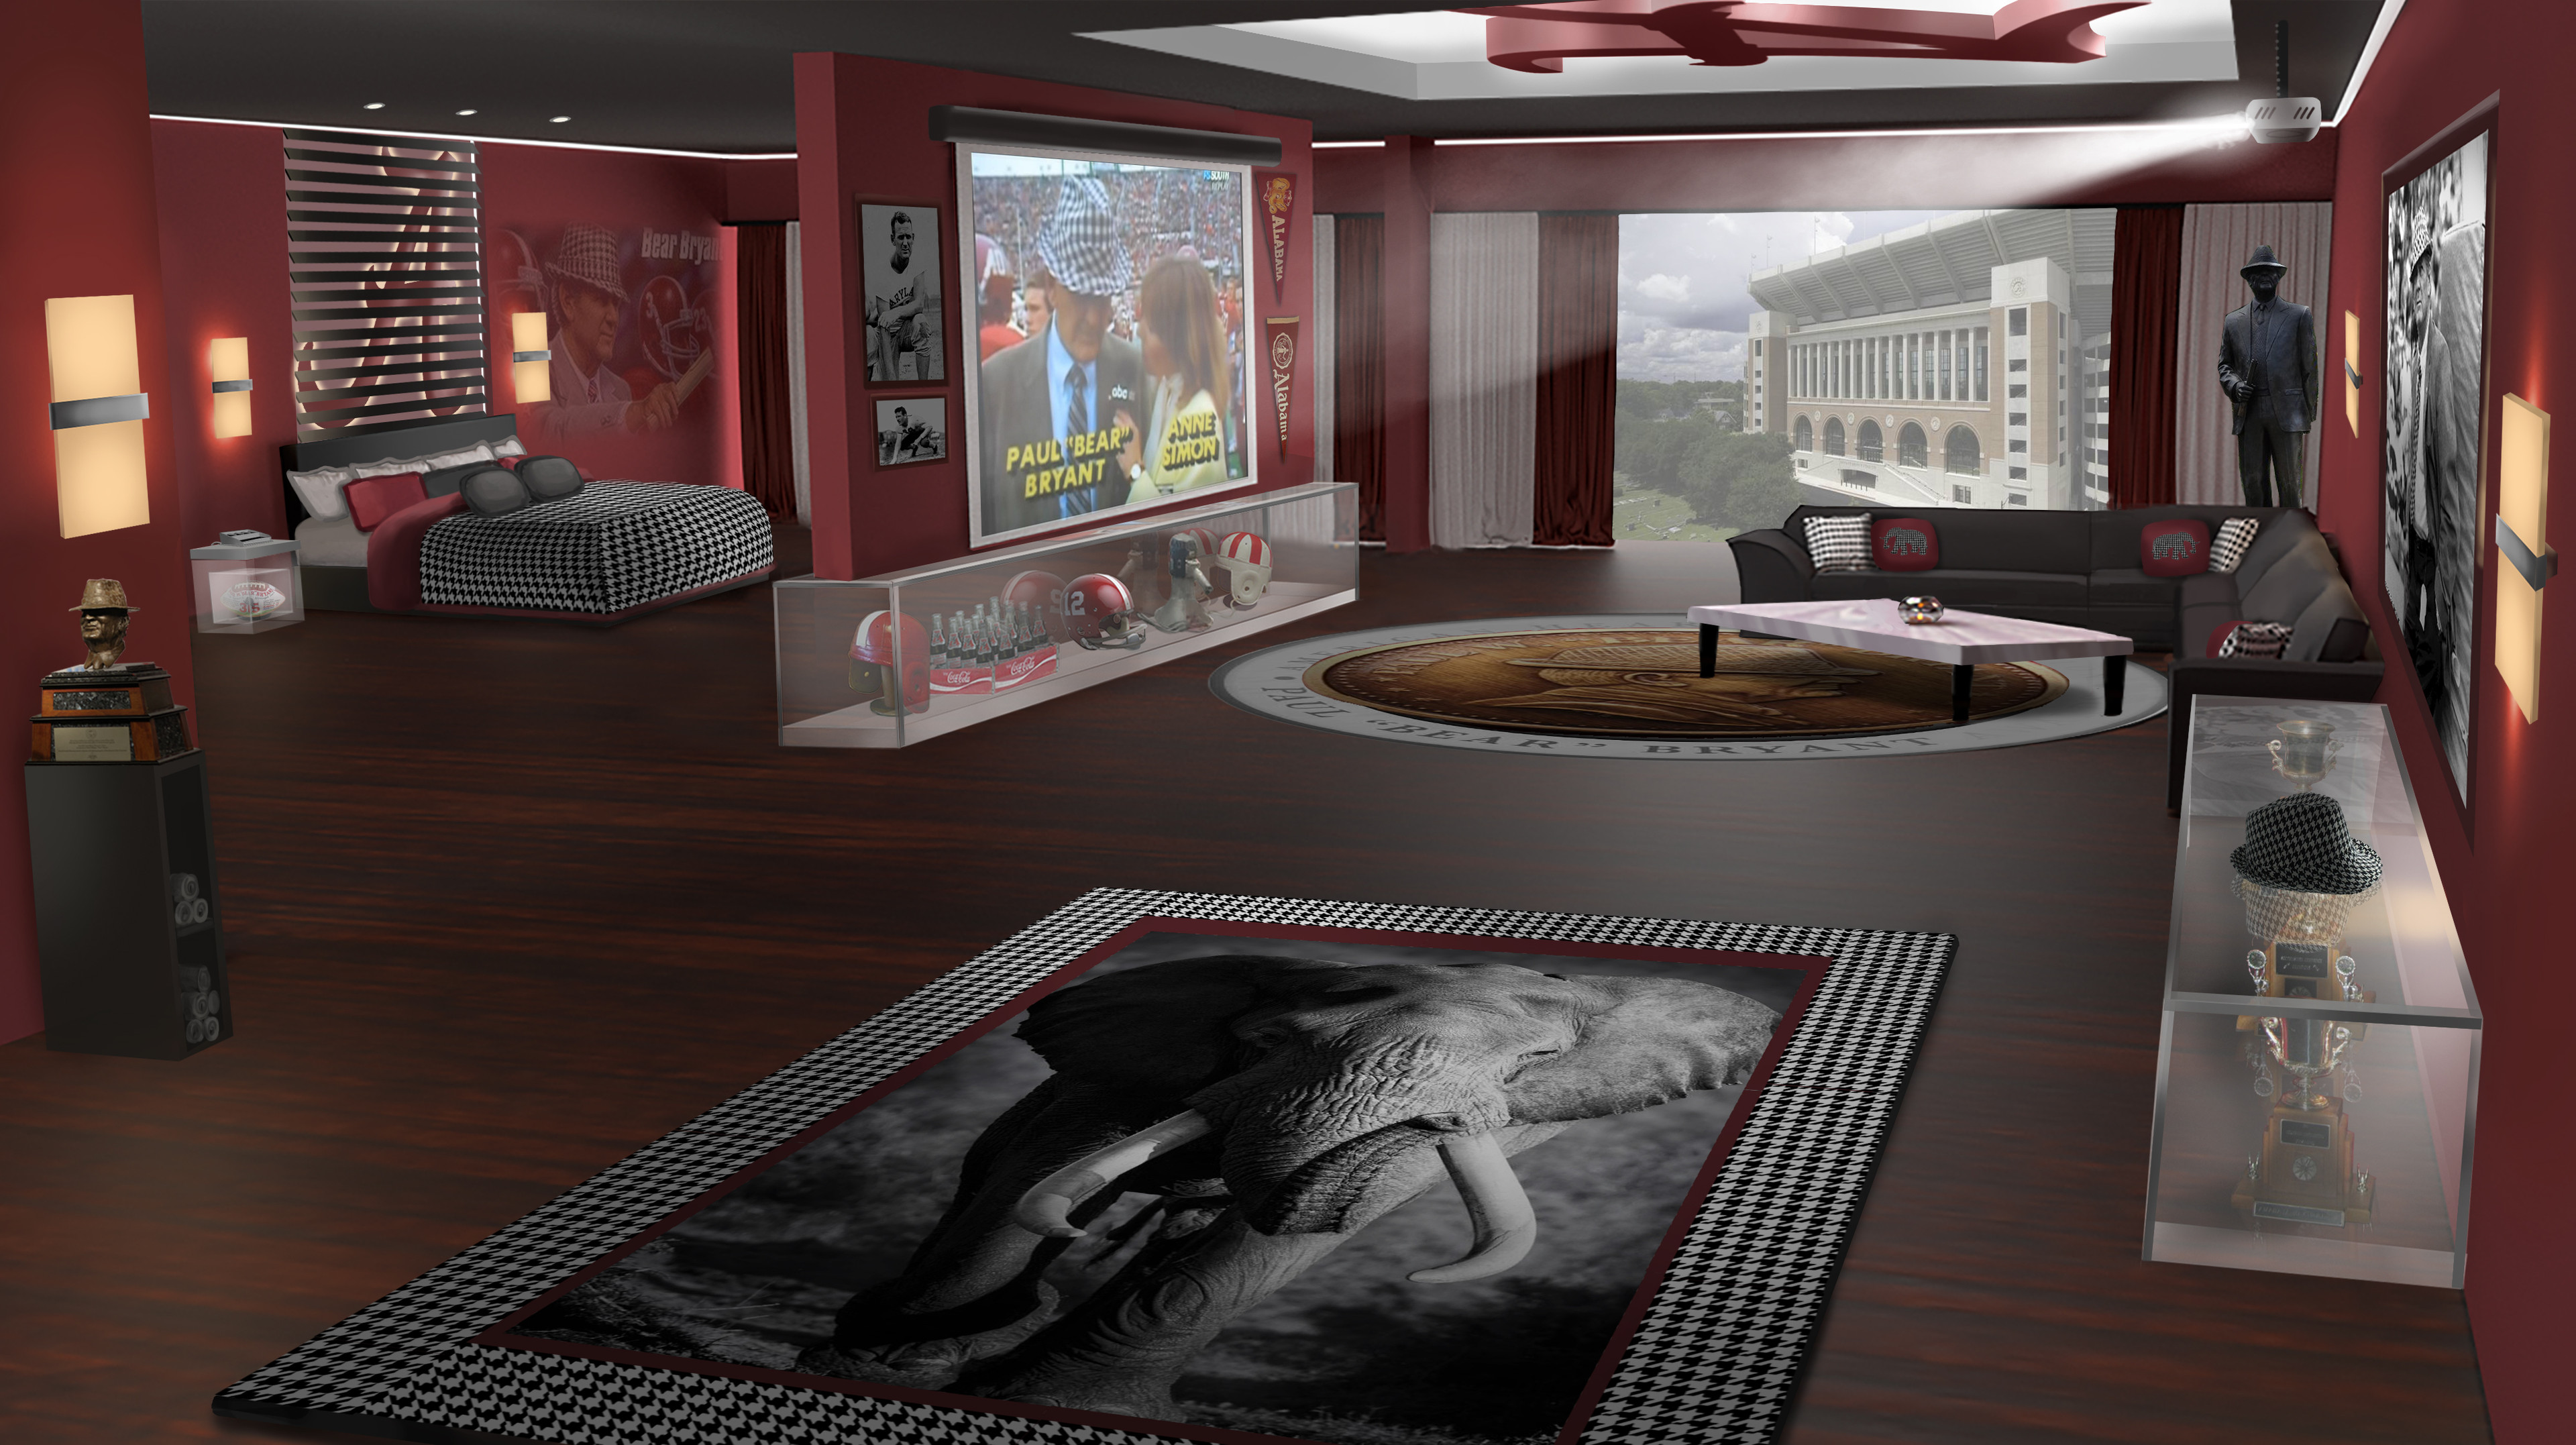 Suite based on the legendary football coach.